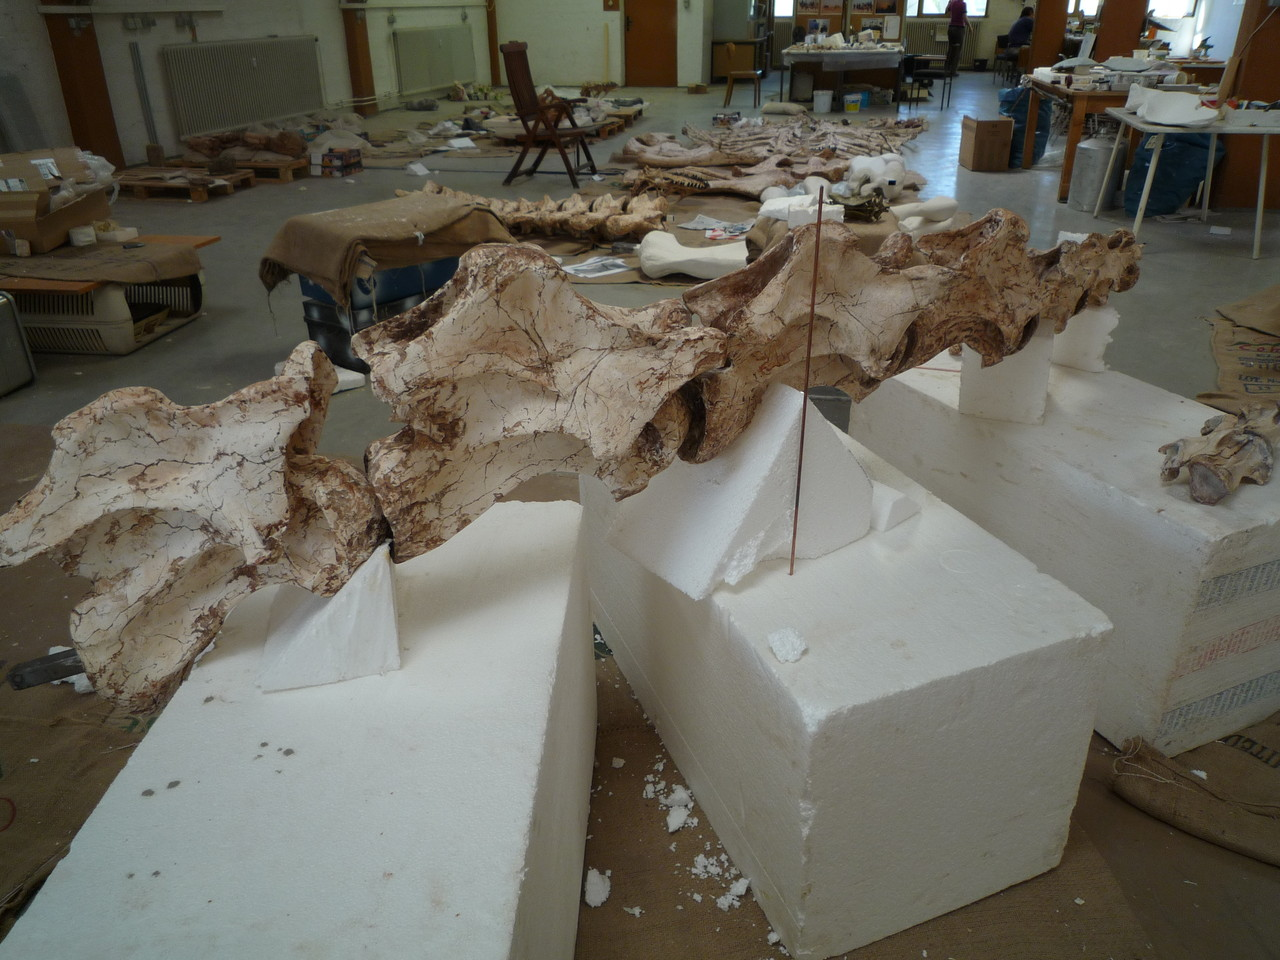 Reproduction of Spinophorosaurus bones